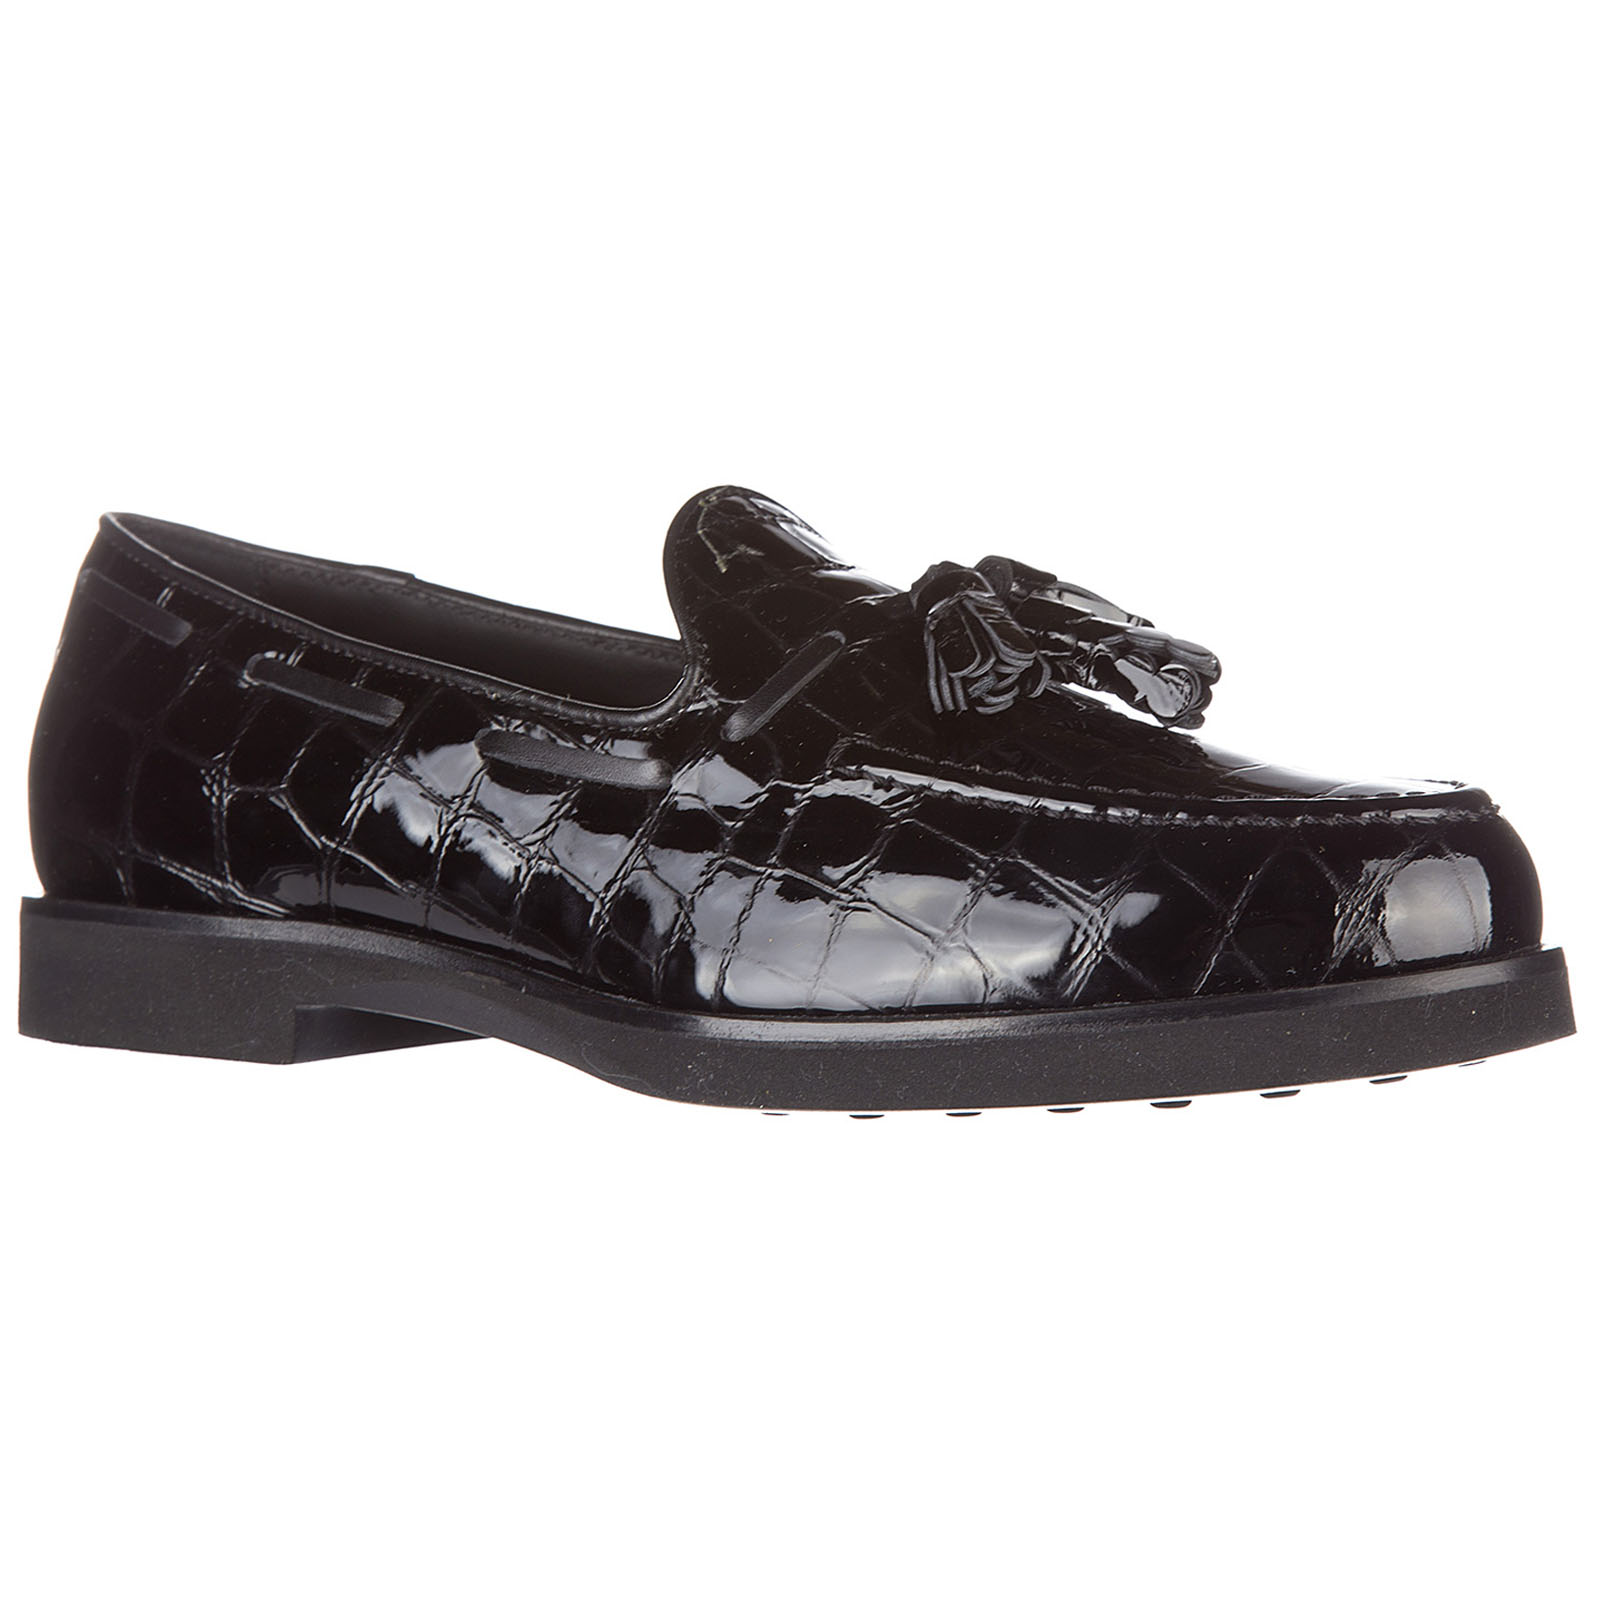 Women's leather loafers moccasins  gomma xl nappine